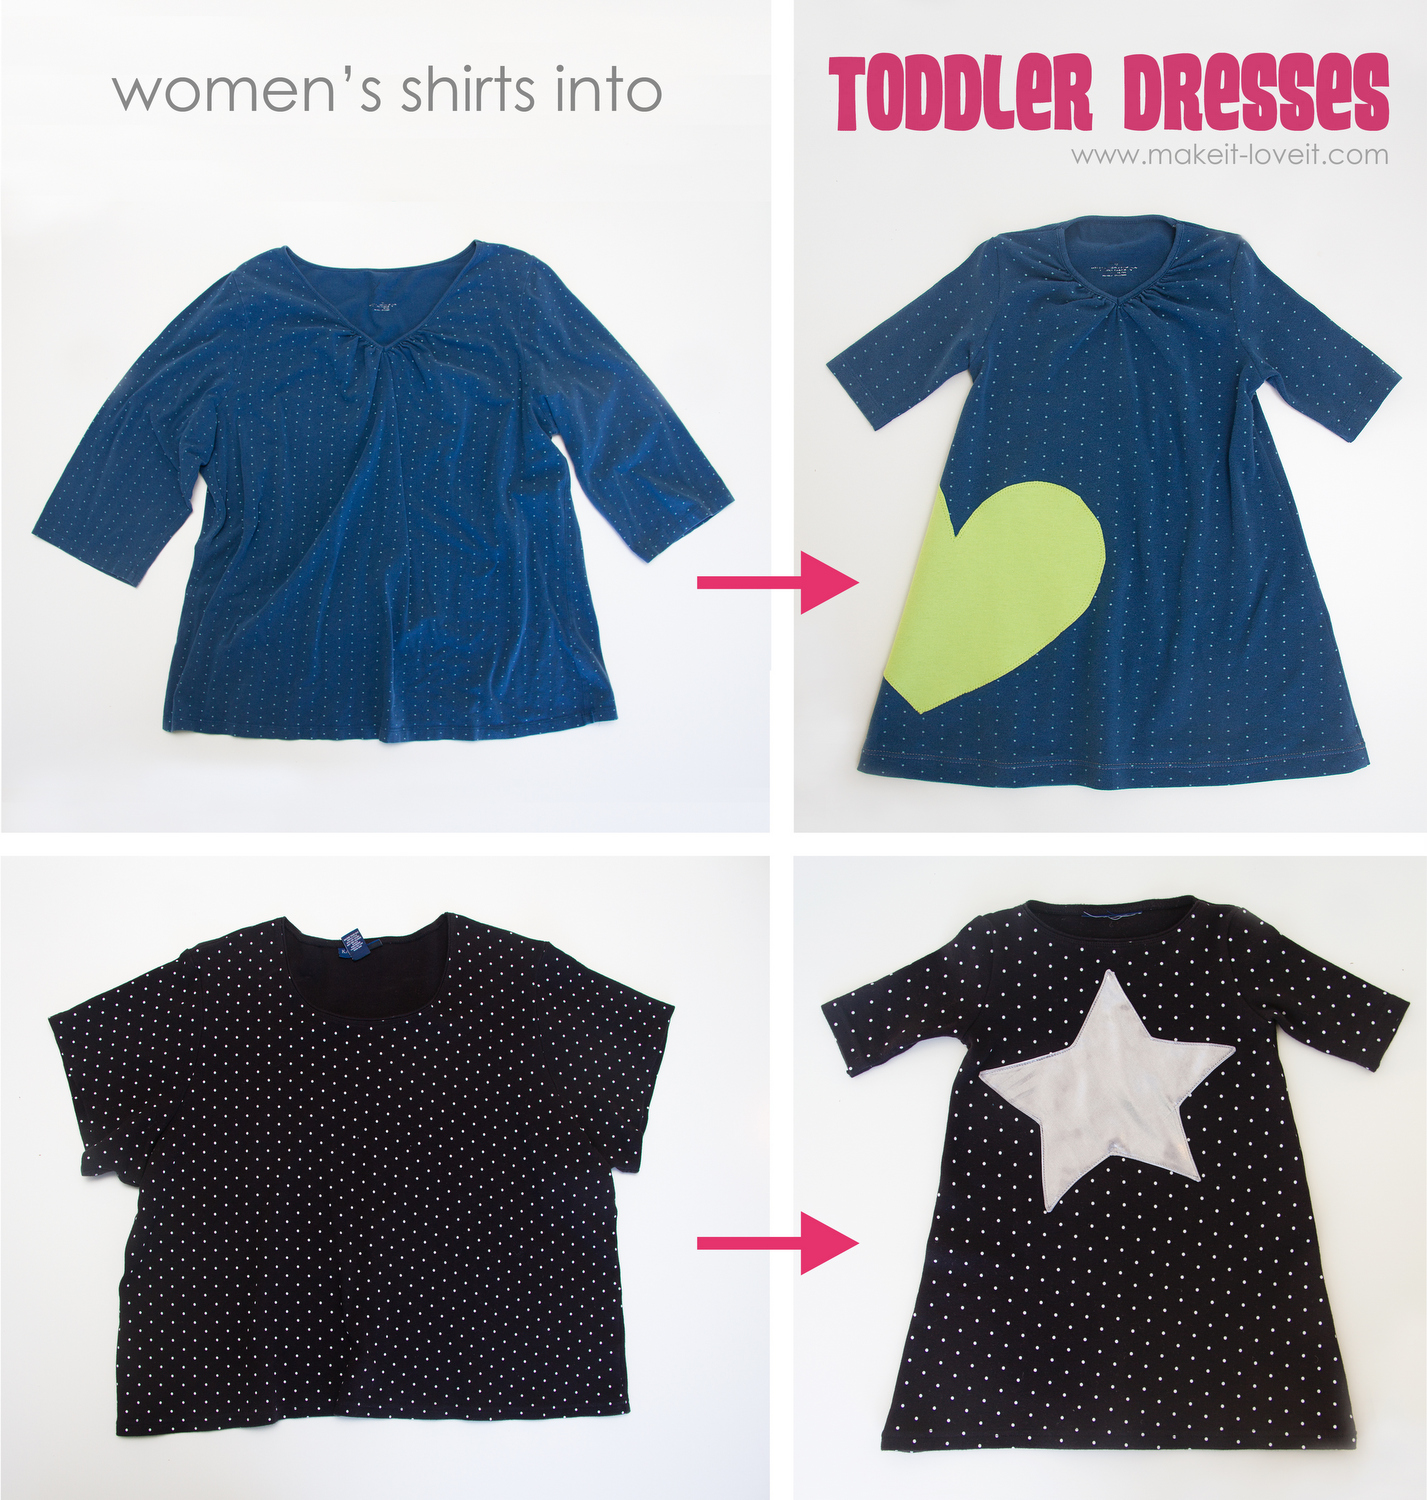 1 shirts-into-toddler-dresses